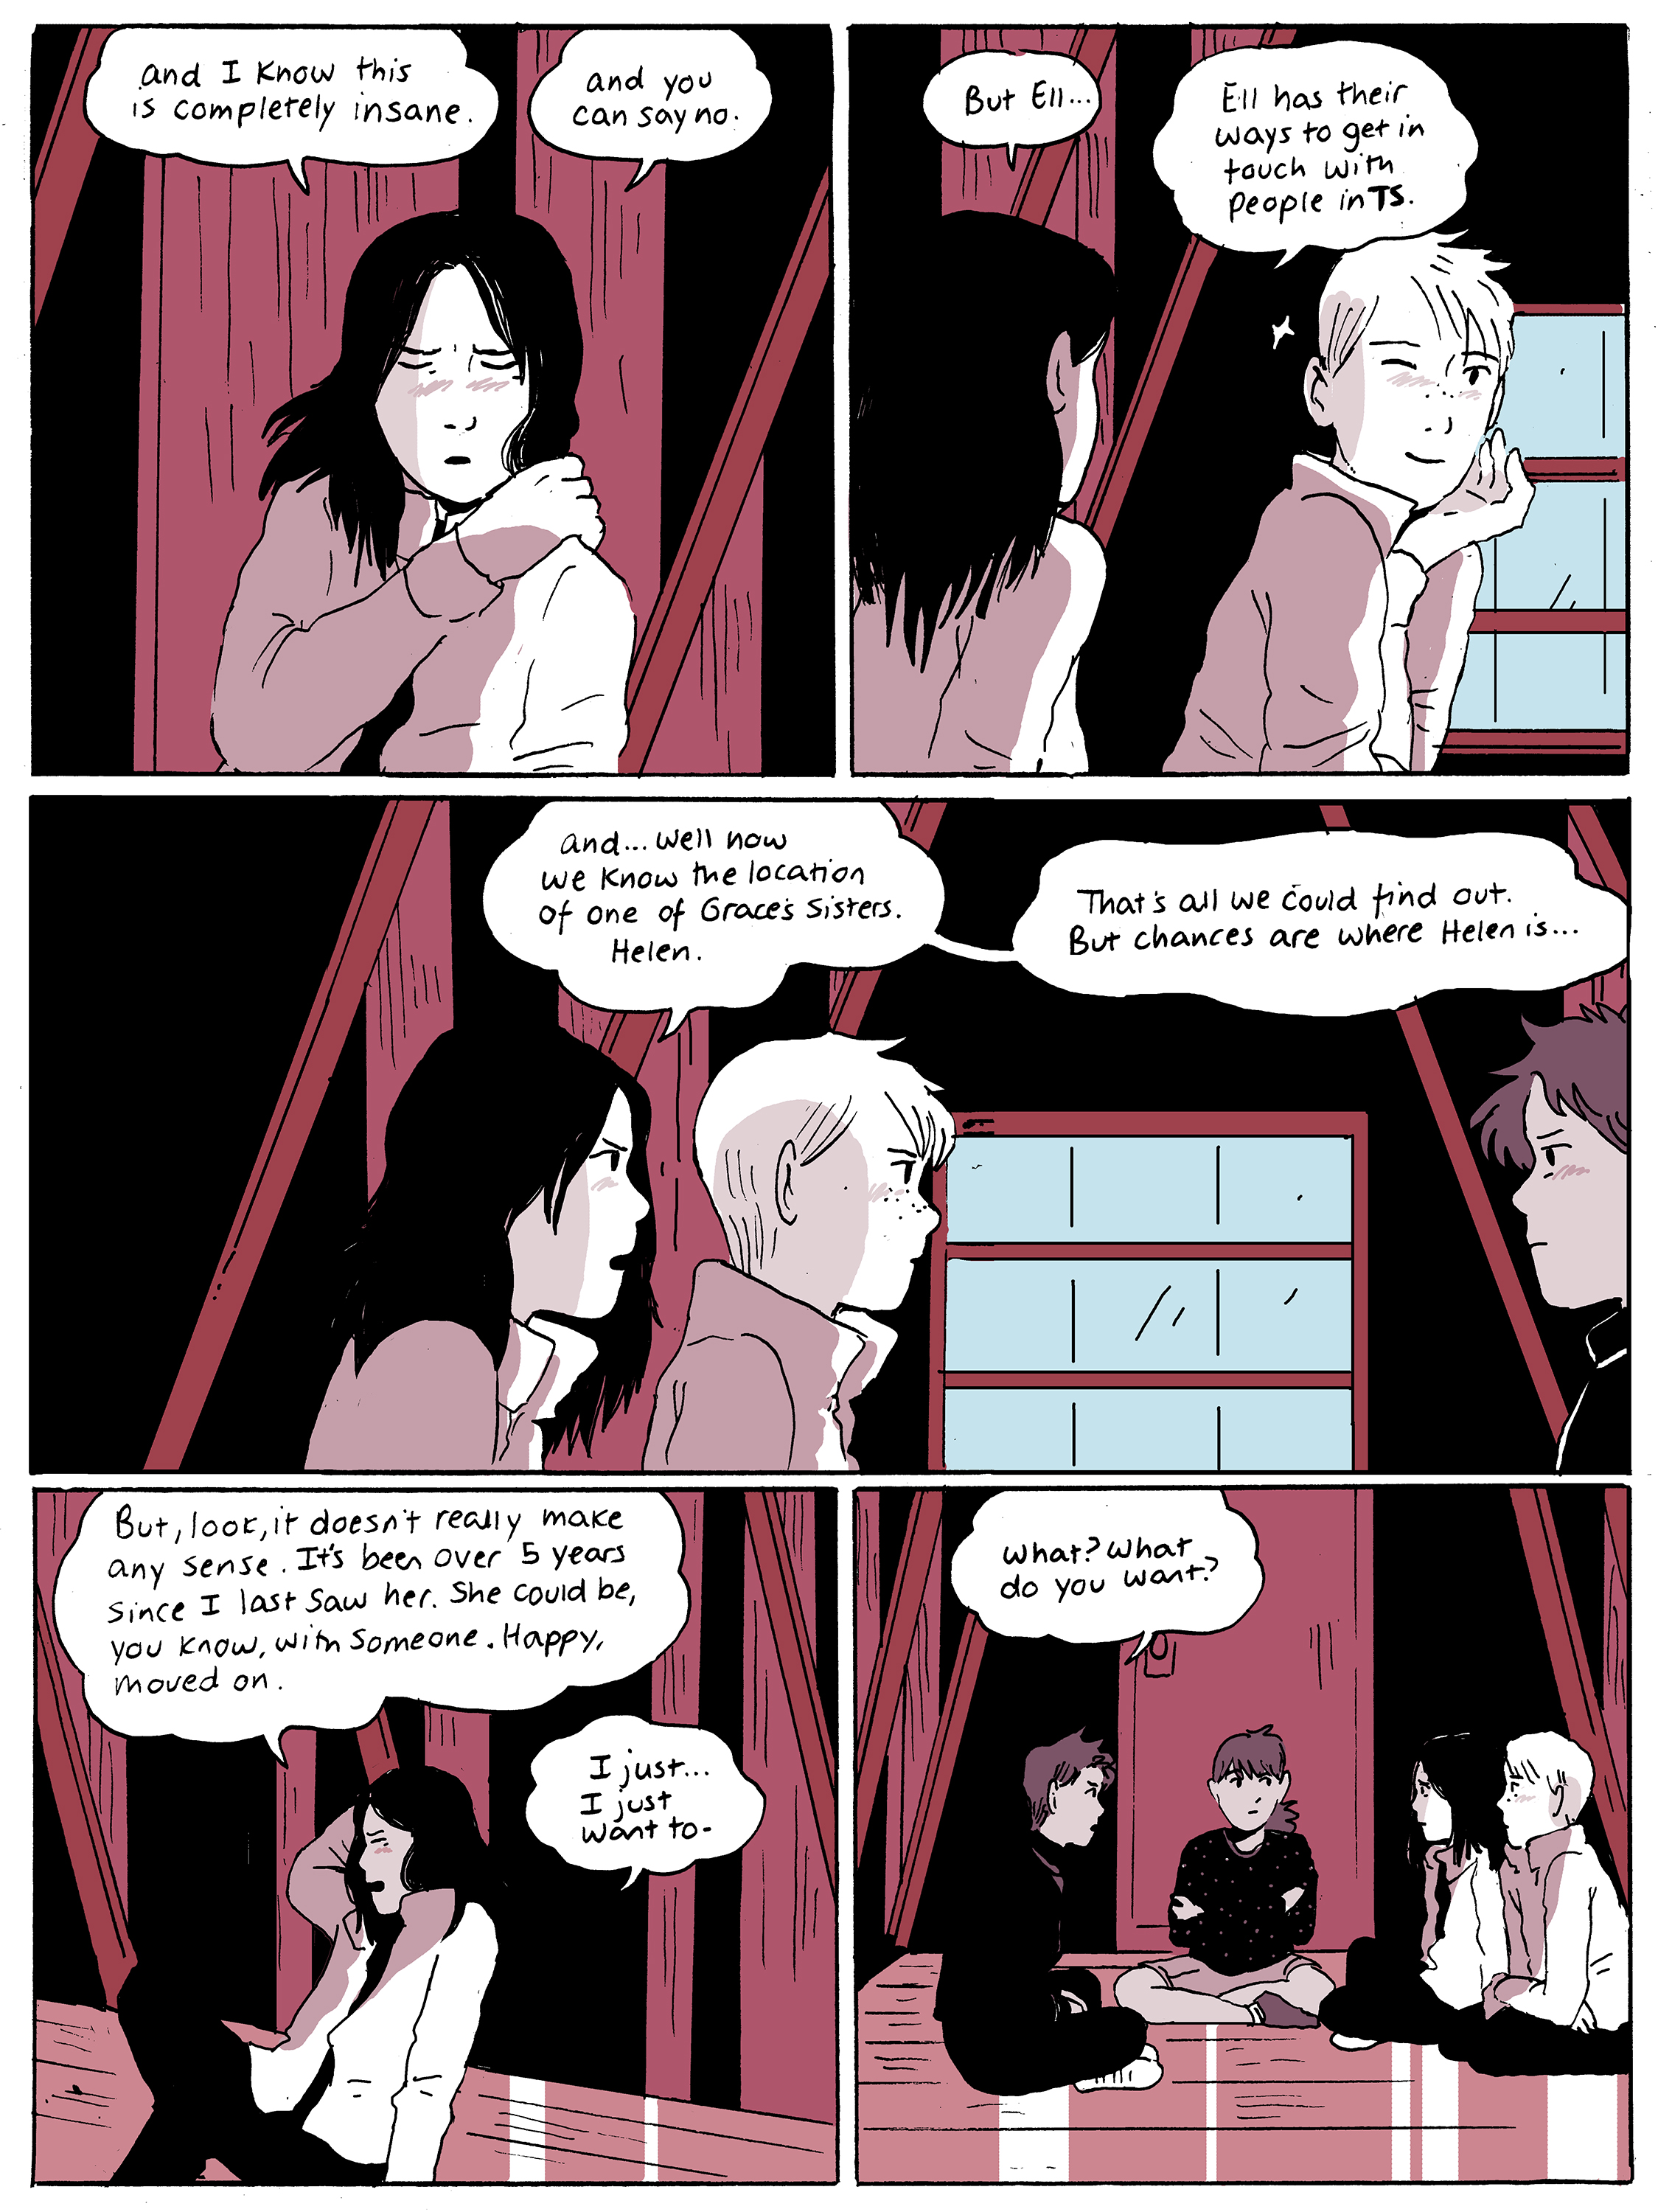 chapter13_page03.jpg